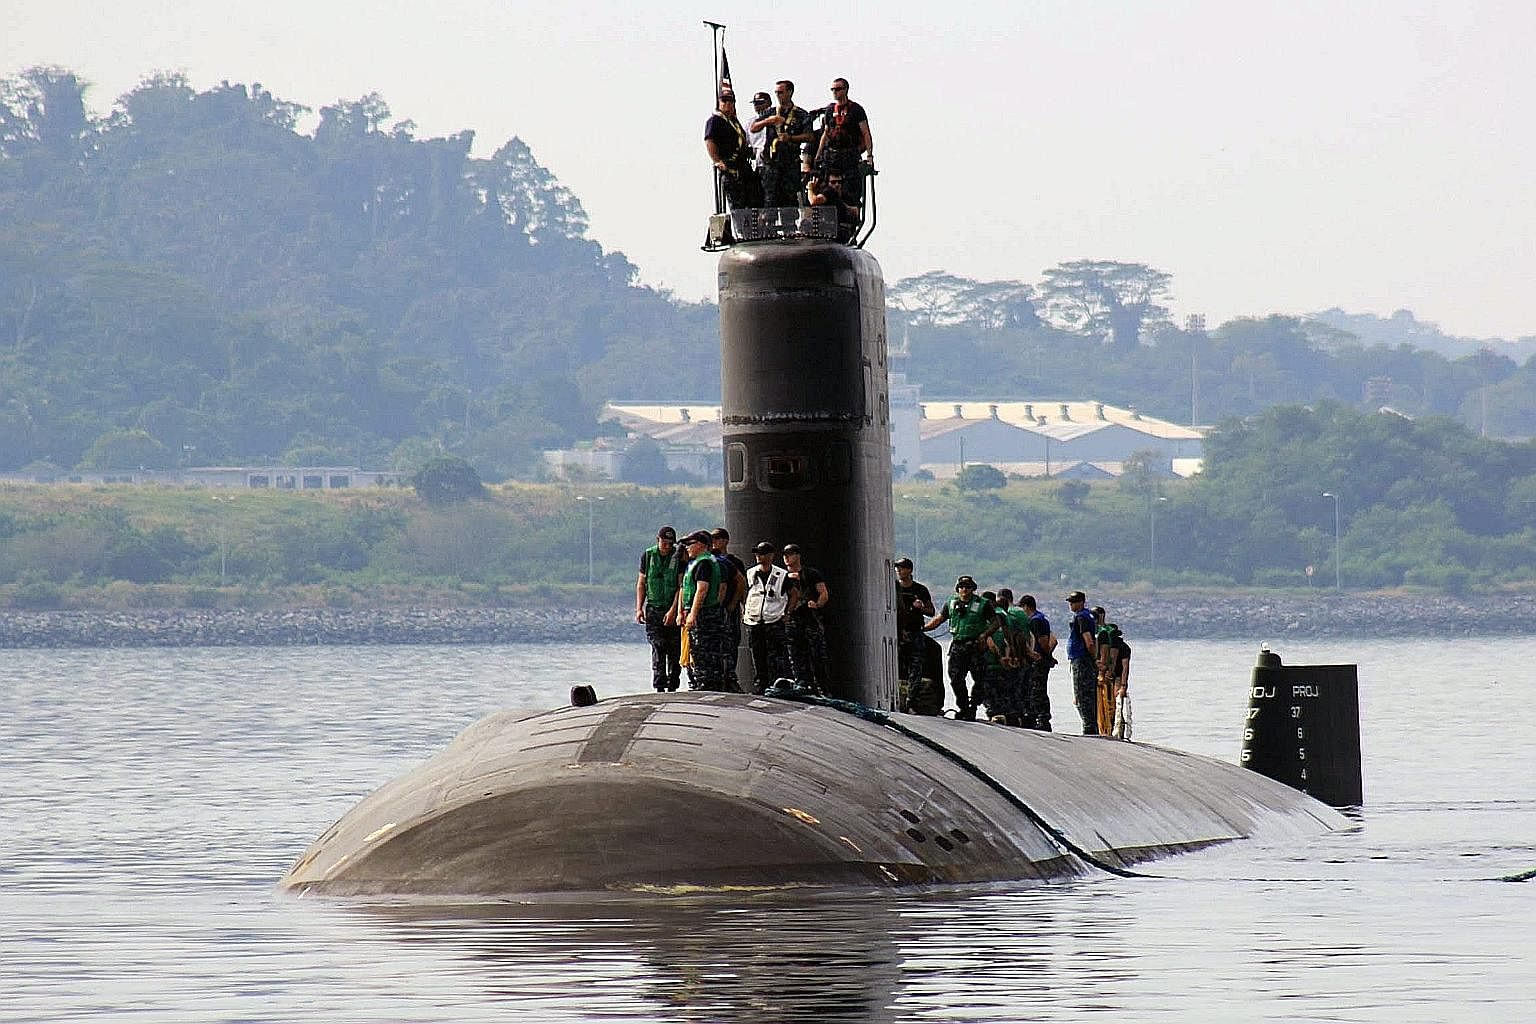 A submarine crew mooring the USS Topeka at Subic port, the Philippines, last Tuesday. A new pact between the Philippines and the US will give the US access to military bases like Subic, Clark and Oyster Bay, which are close to disputed areas in the S